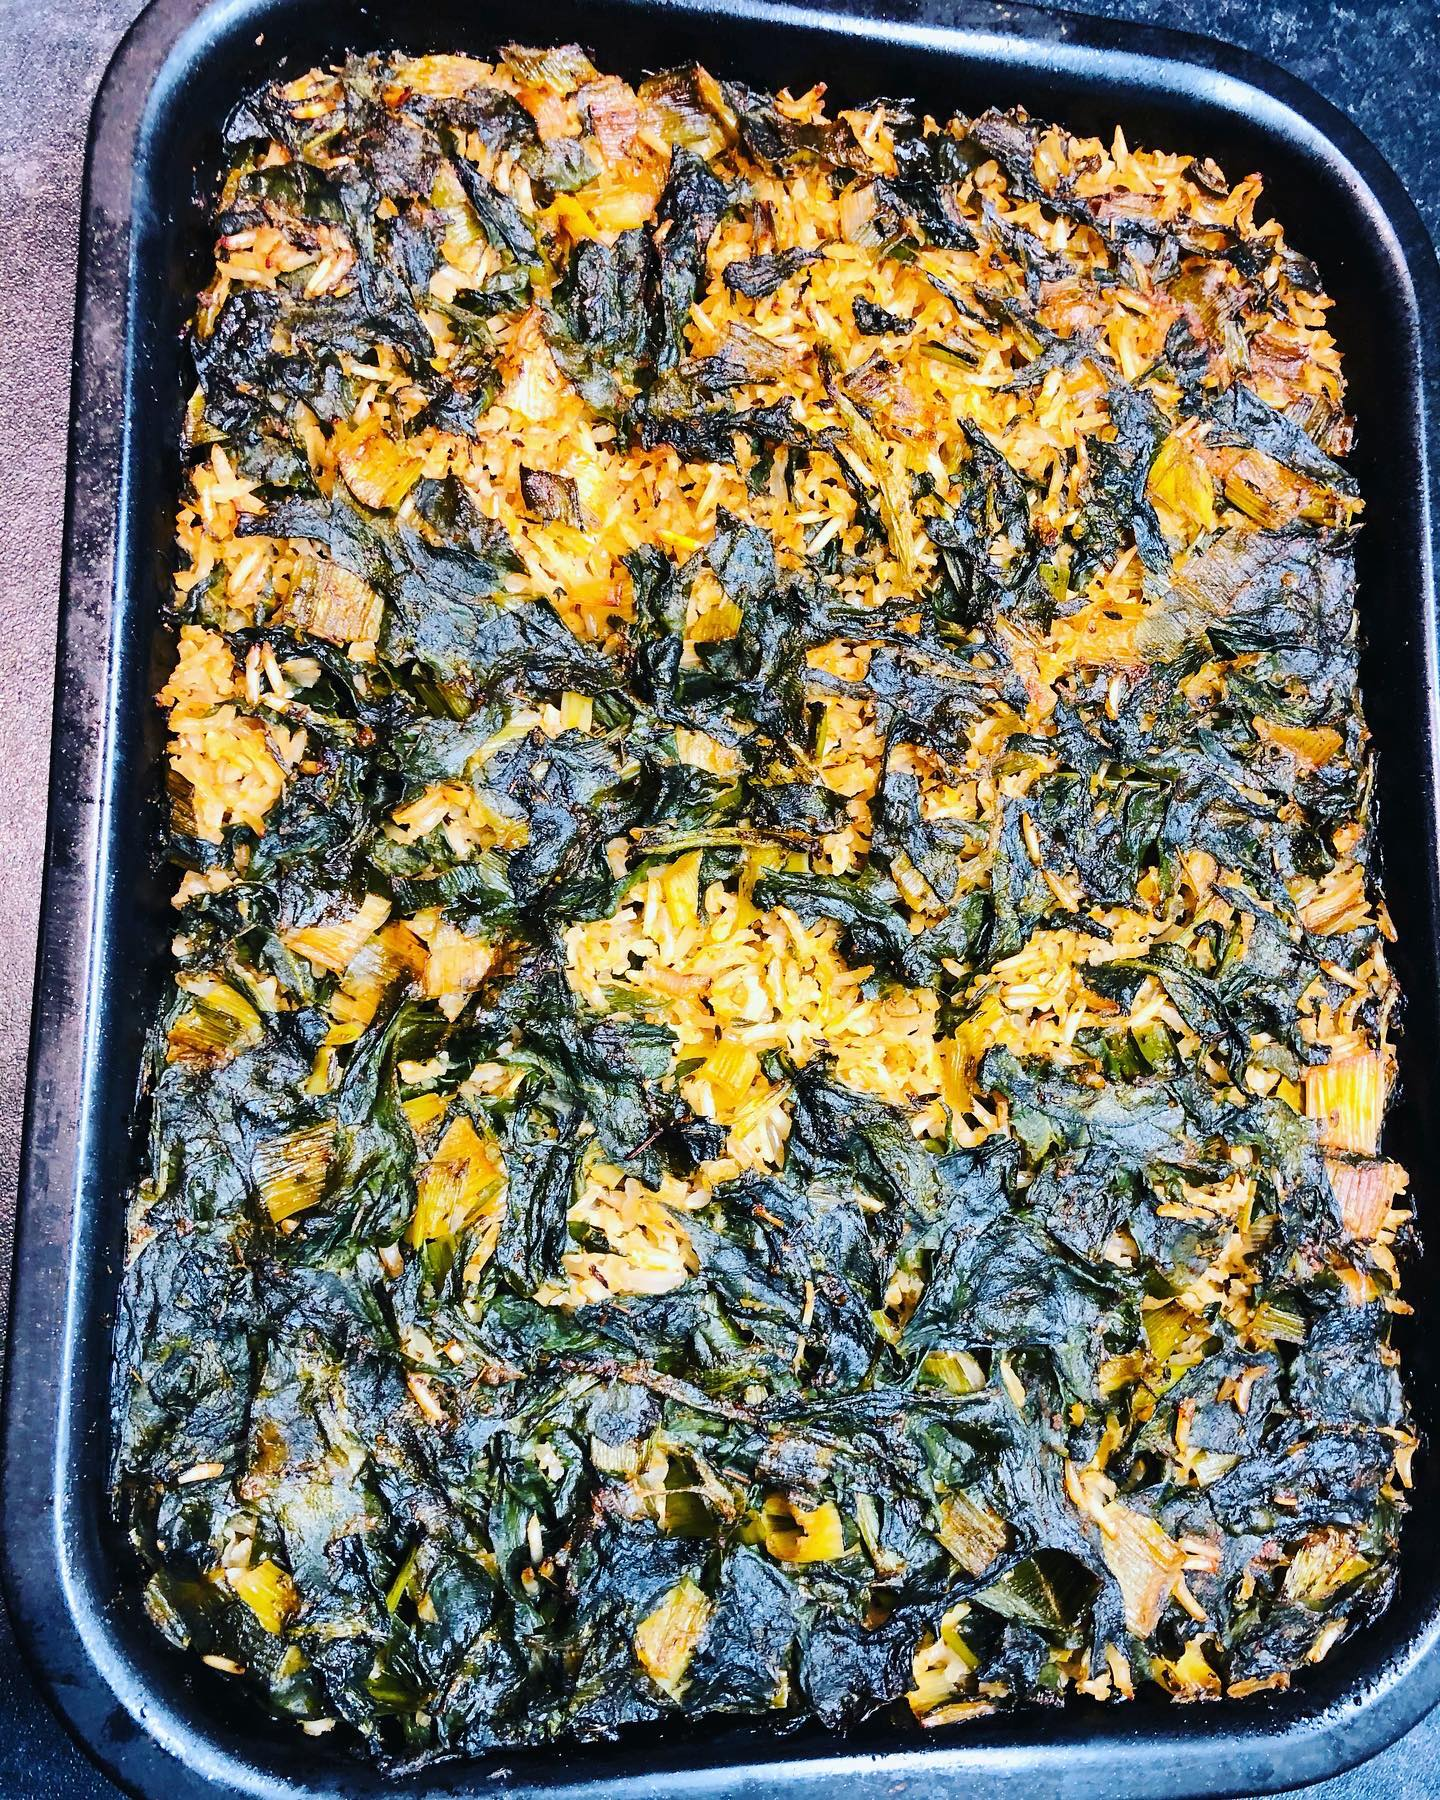 Oven-Baked Rice With Spinach